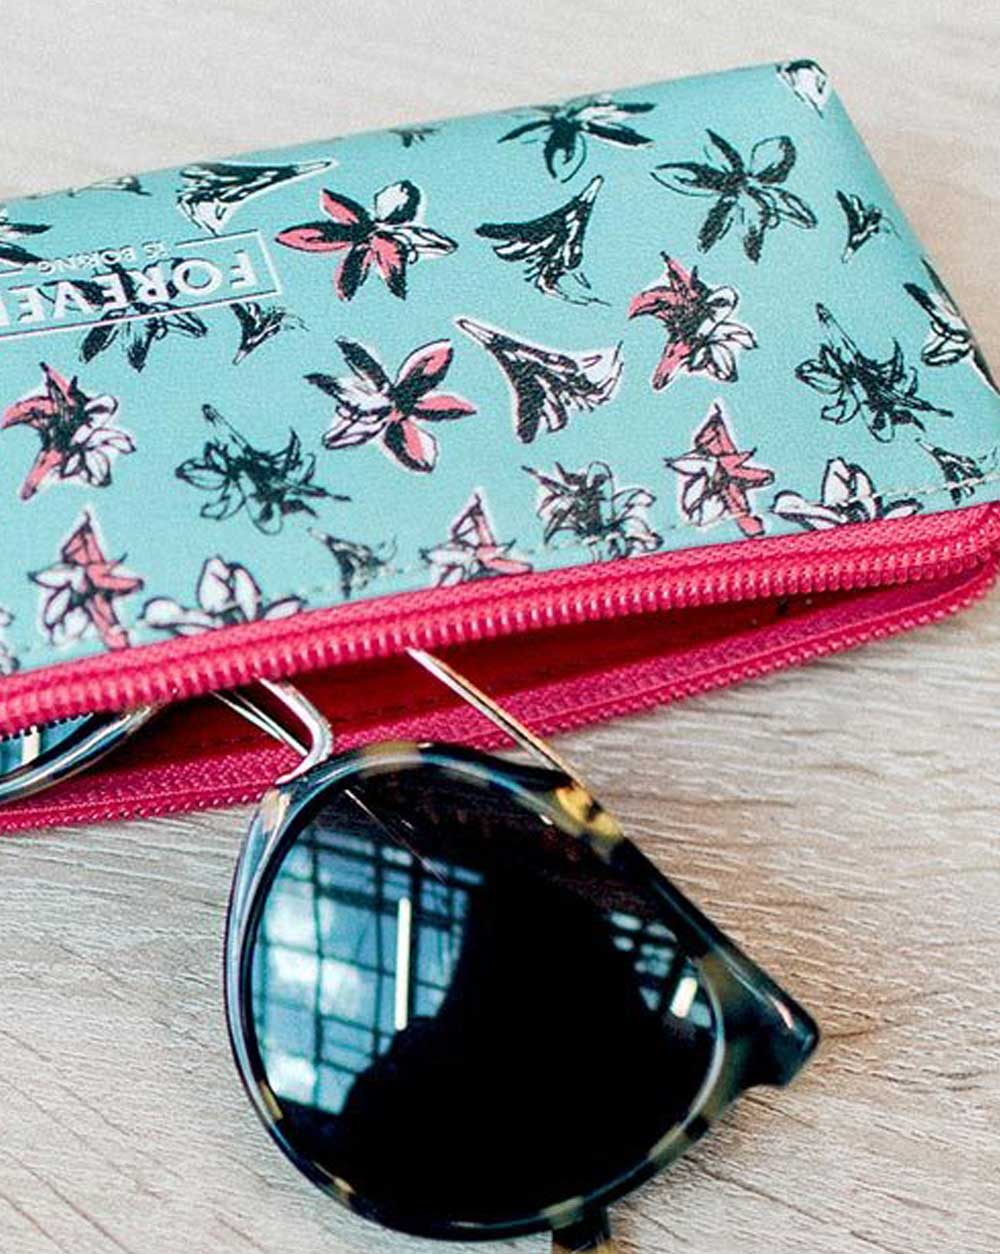 estuche estojo pencil case pink blossom 2